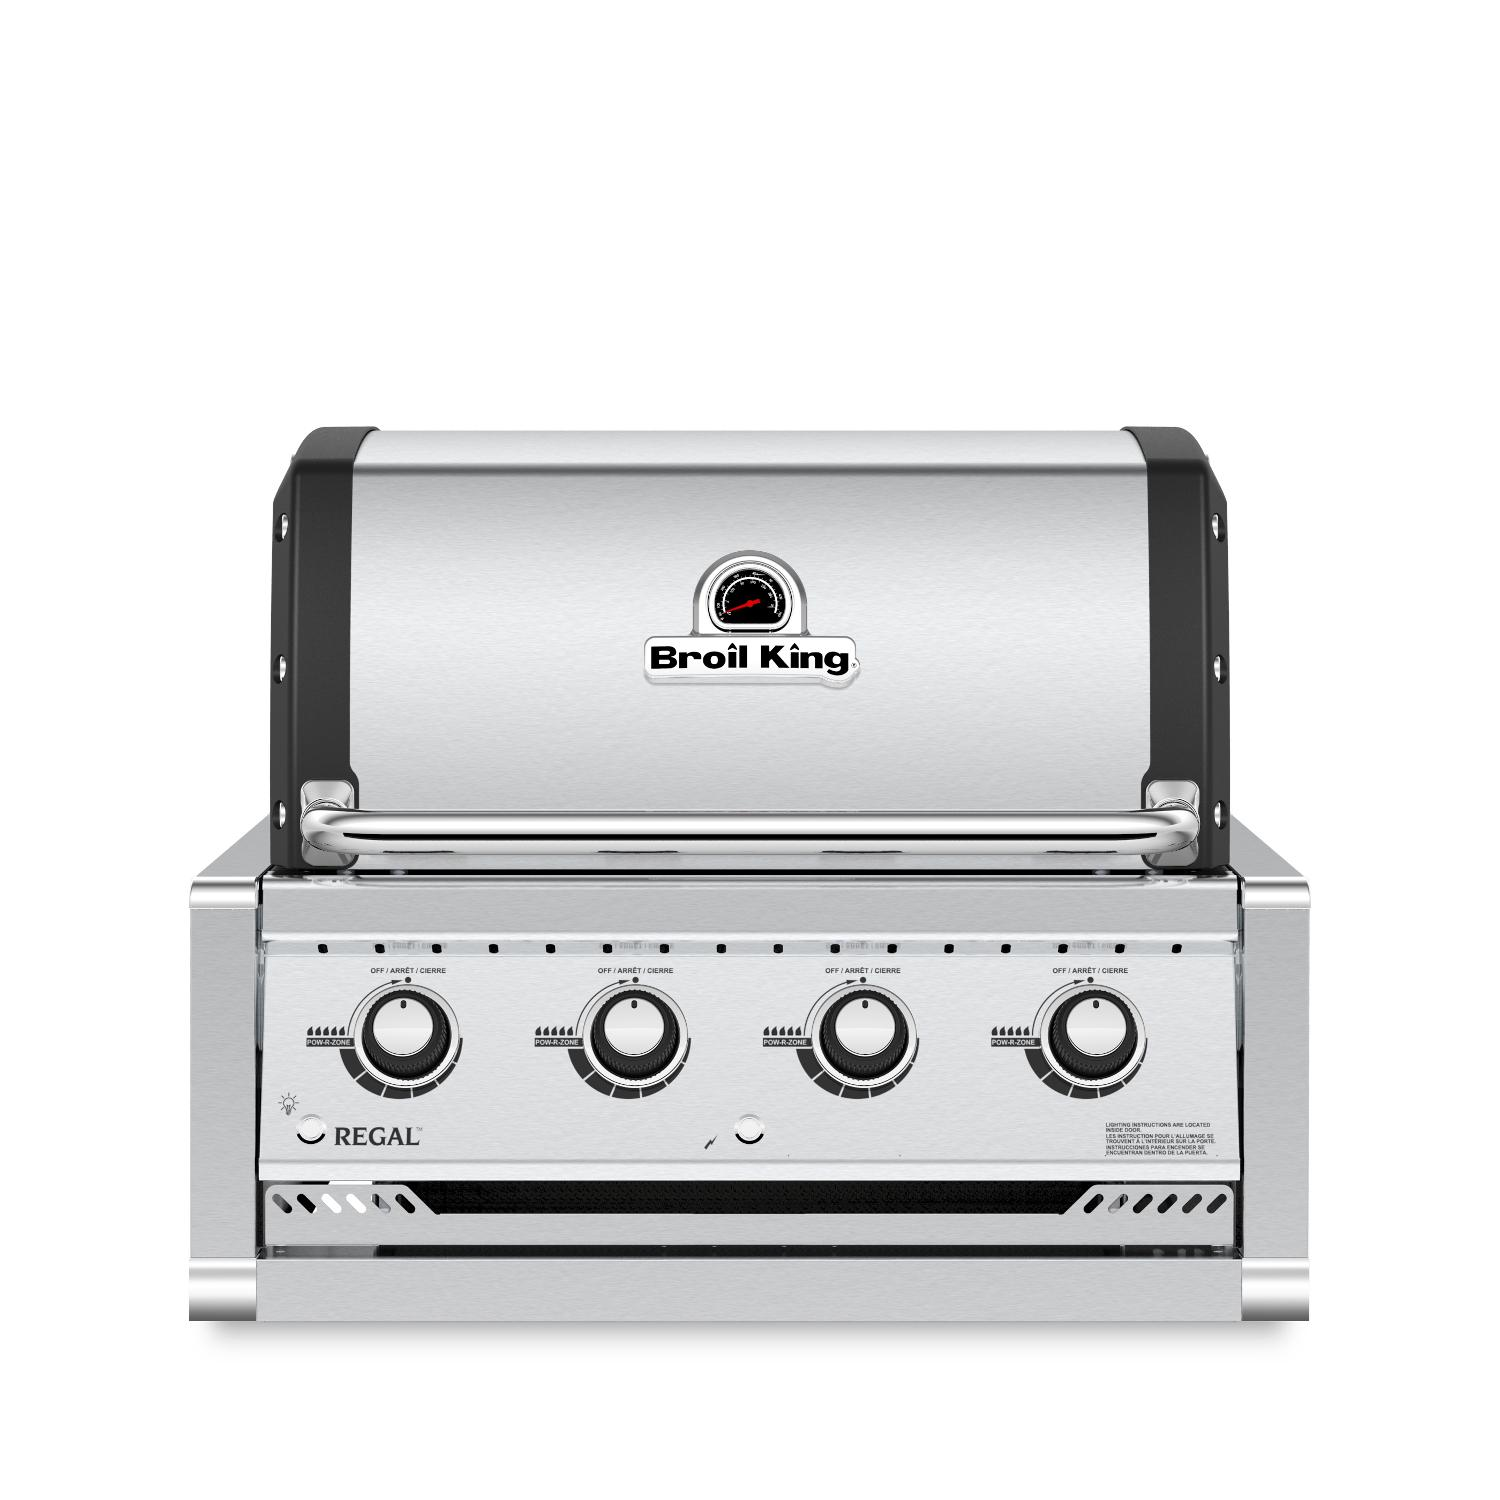 Broil King Regal S420 4-burner Built-in Propane Gas Grill - Stainless Steel - 885714